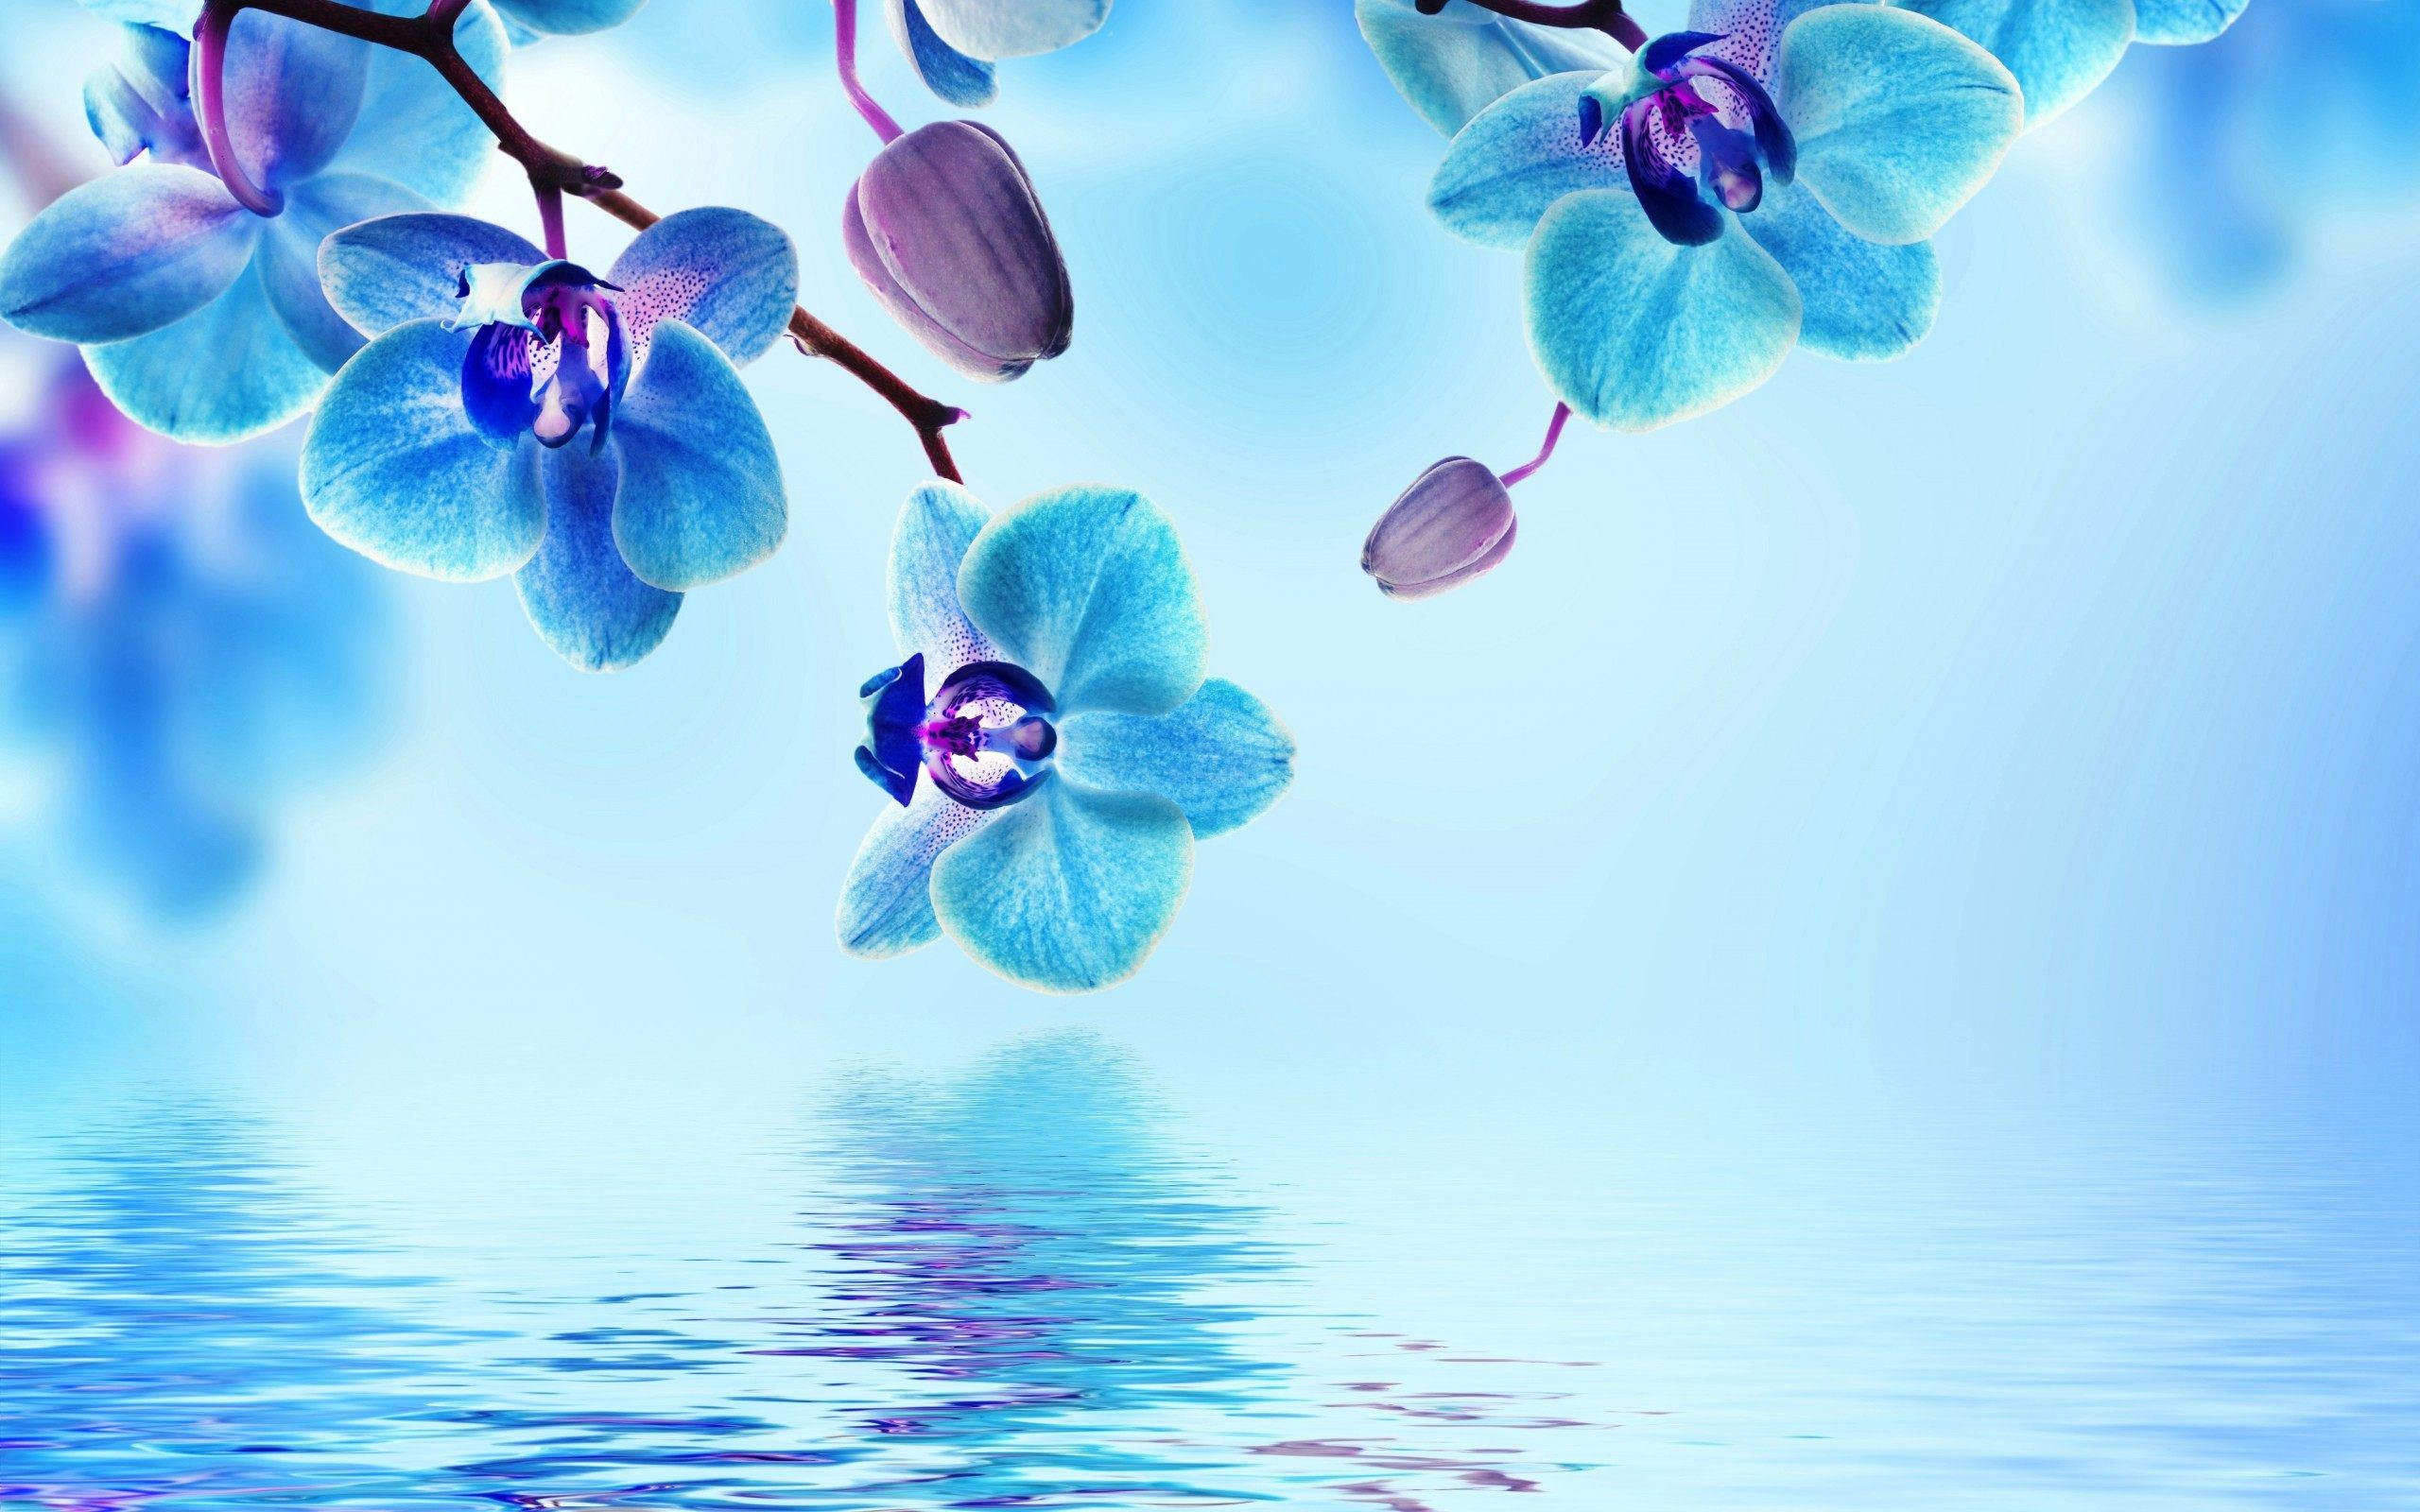 Res: 2560x1600, Blue Flower Wallpapers Photo